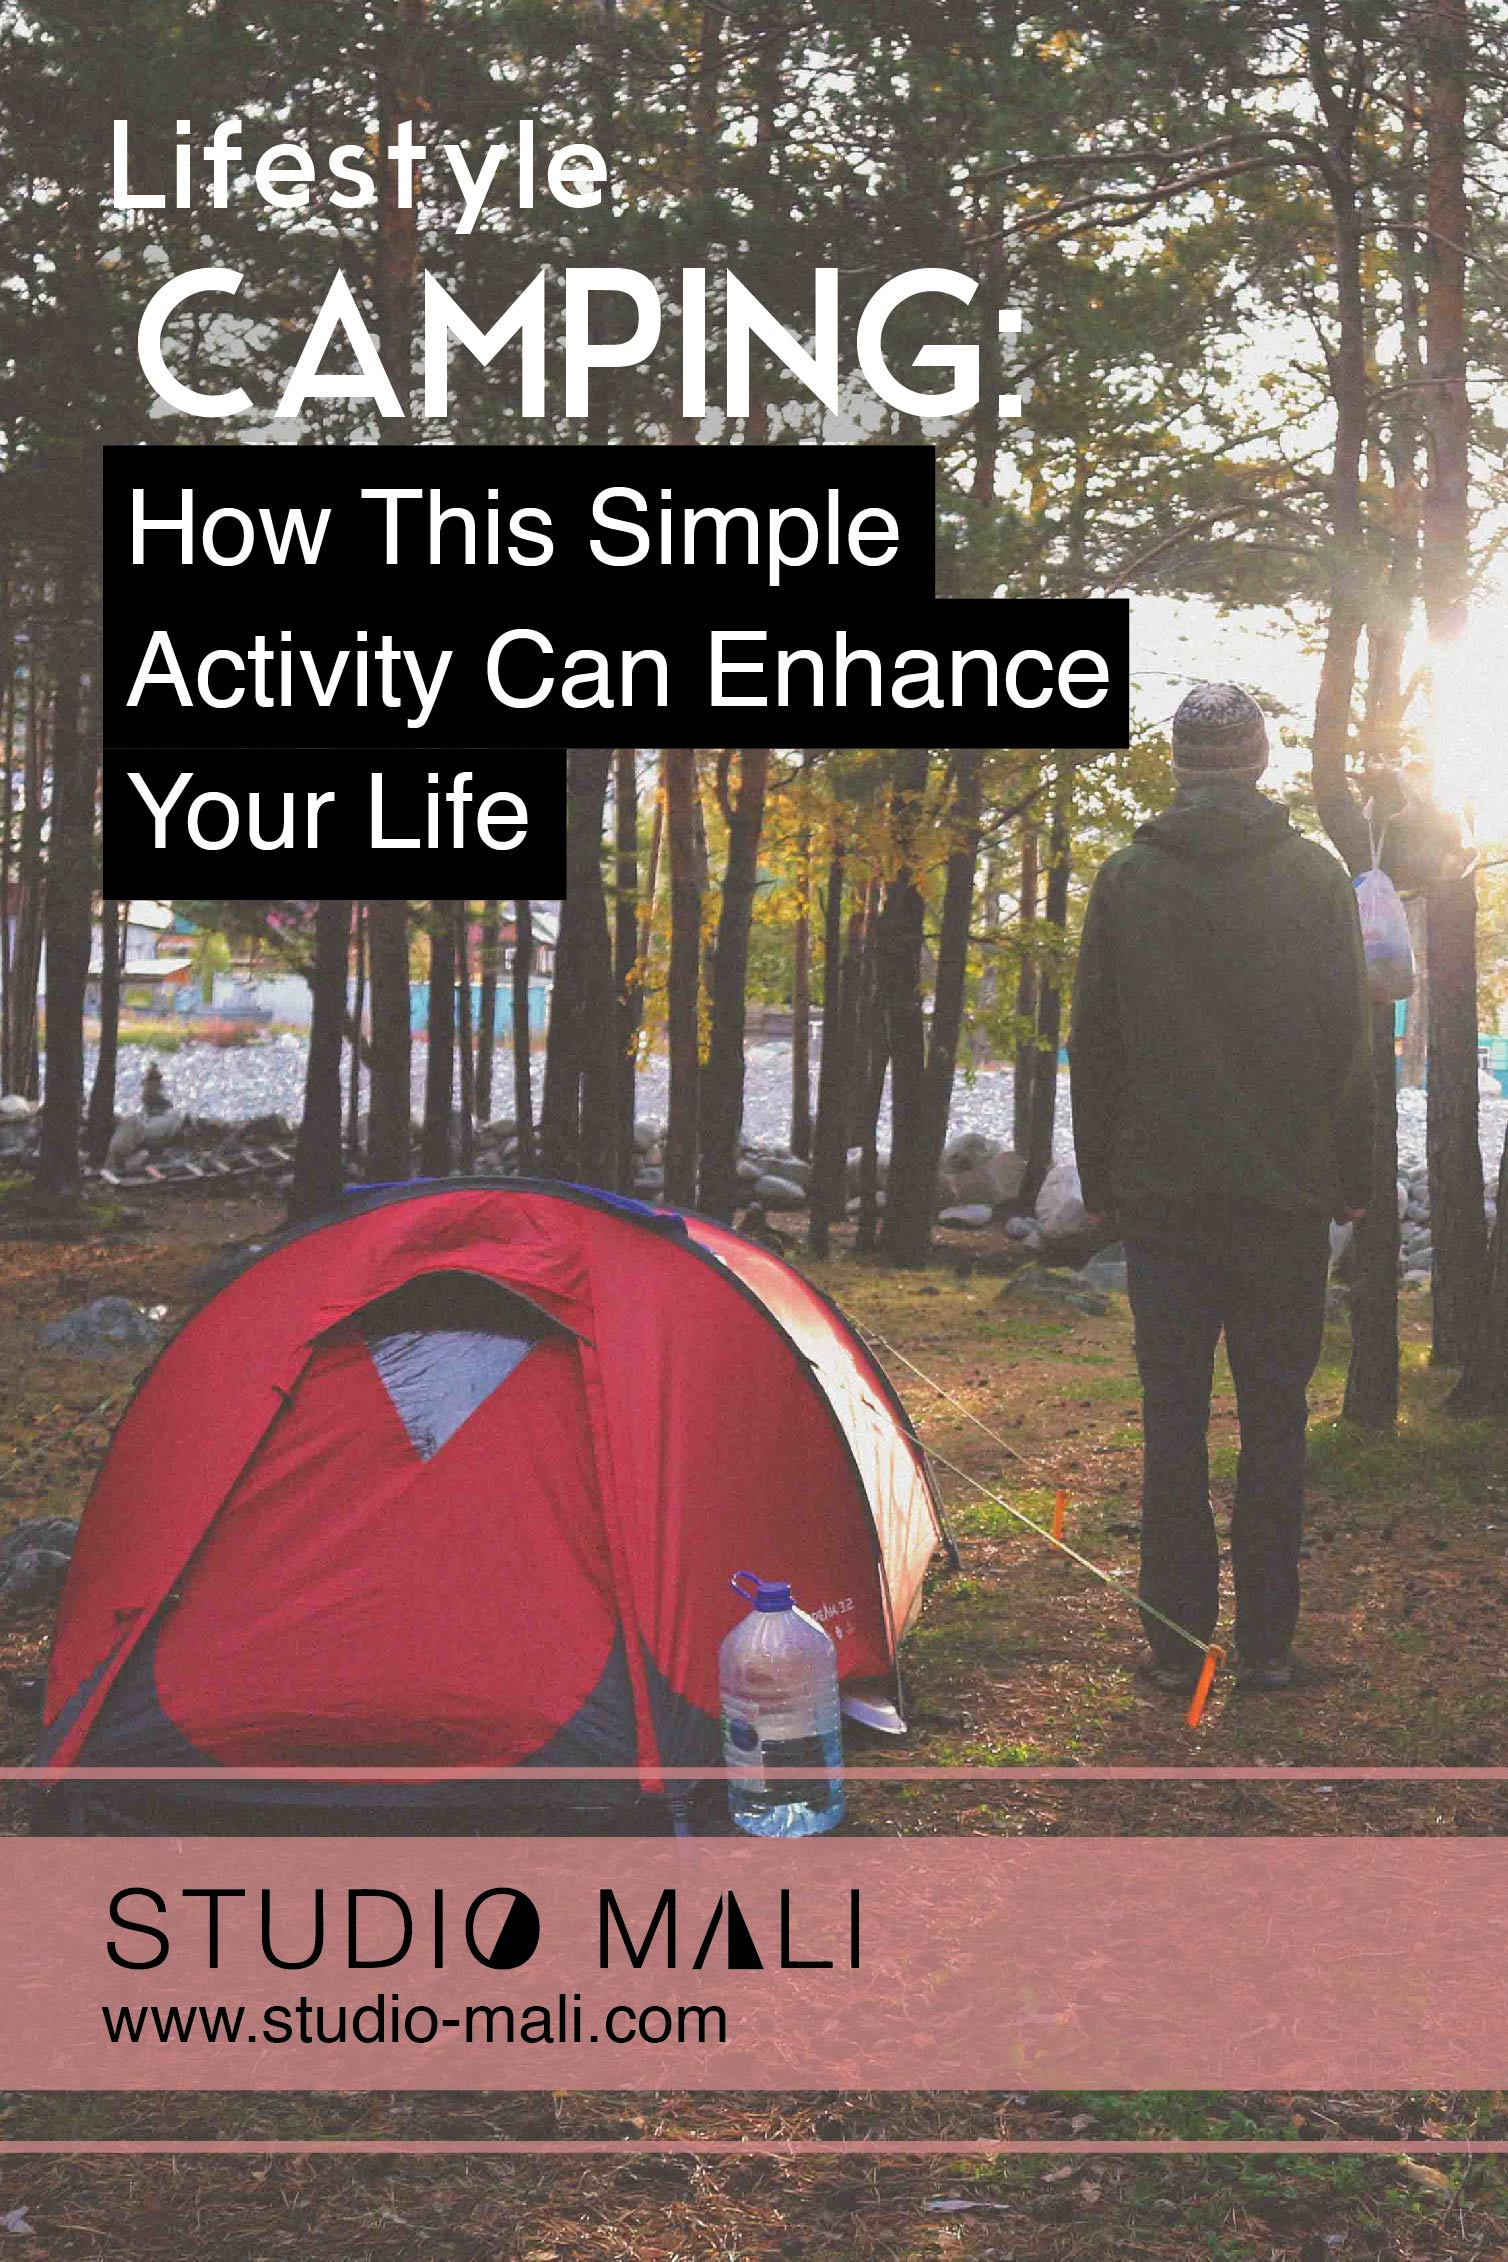 Camping - How This Sample Activity Can Enhance Your Life, by Studio Mali